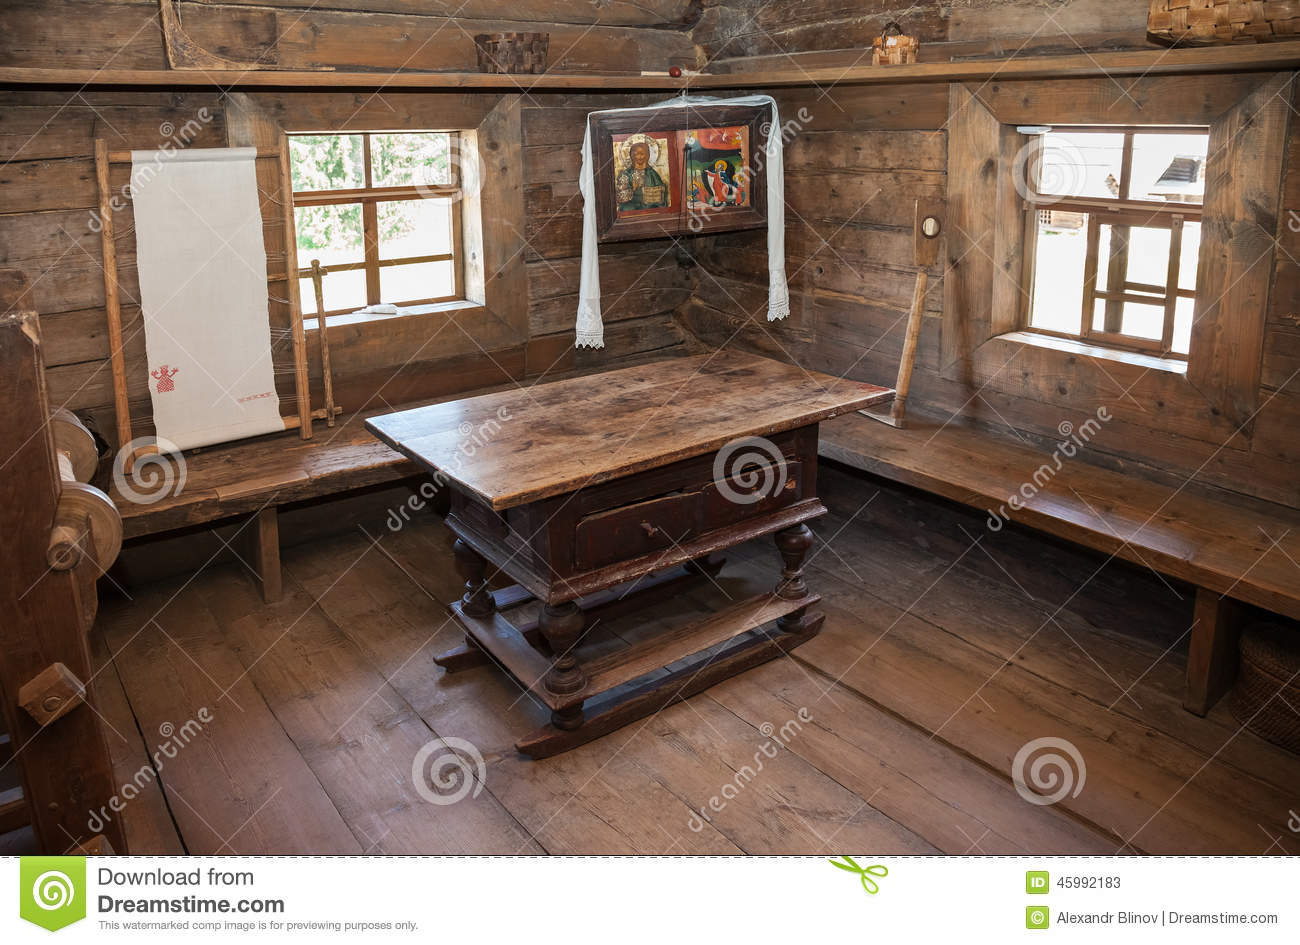 Int rieur de vieille maison en bois rurale photo stock - Maison interieur bois ...